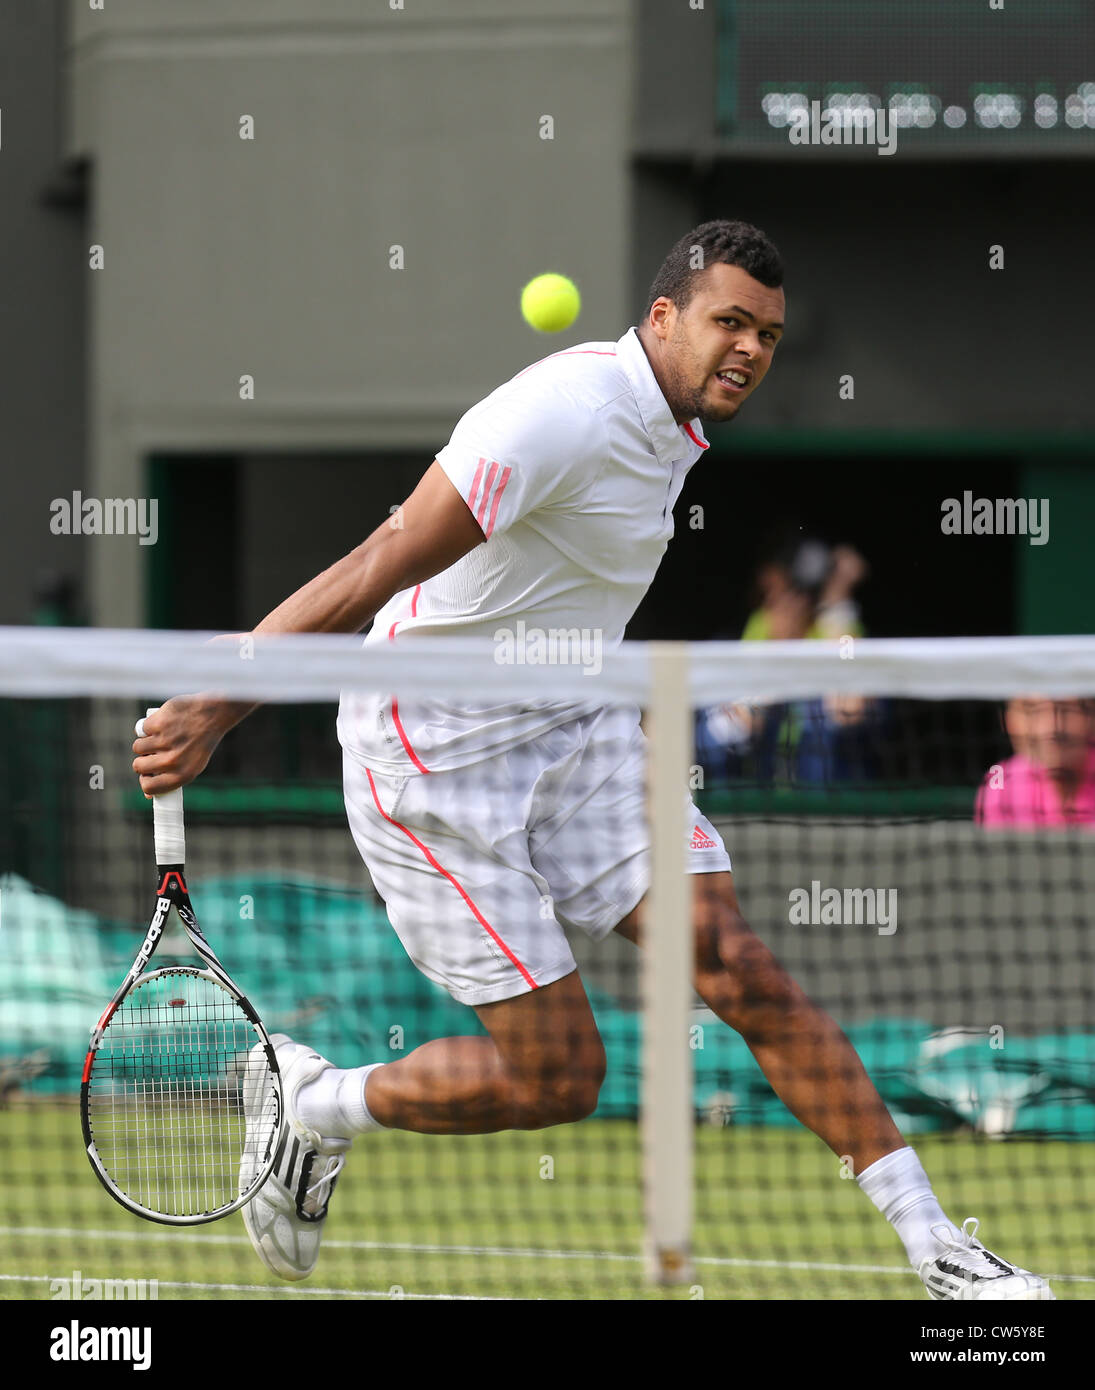 Jo-Wilfried Tsonga (FRA) in action at Wimbledon - Stock Image